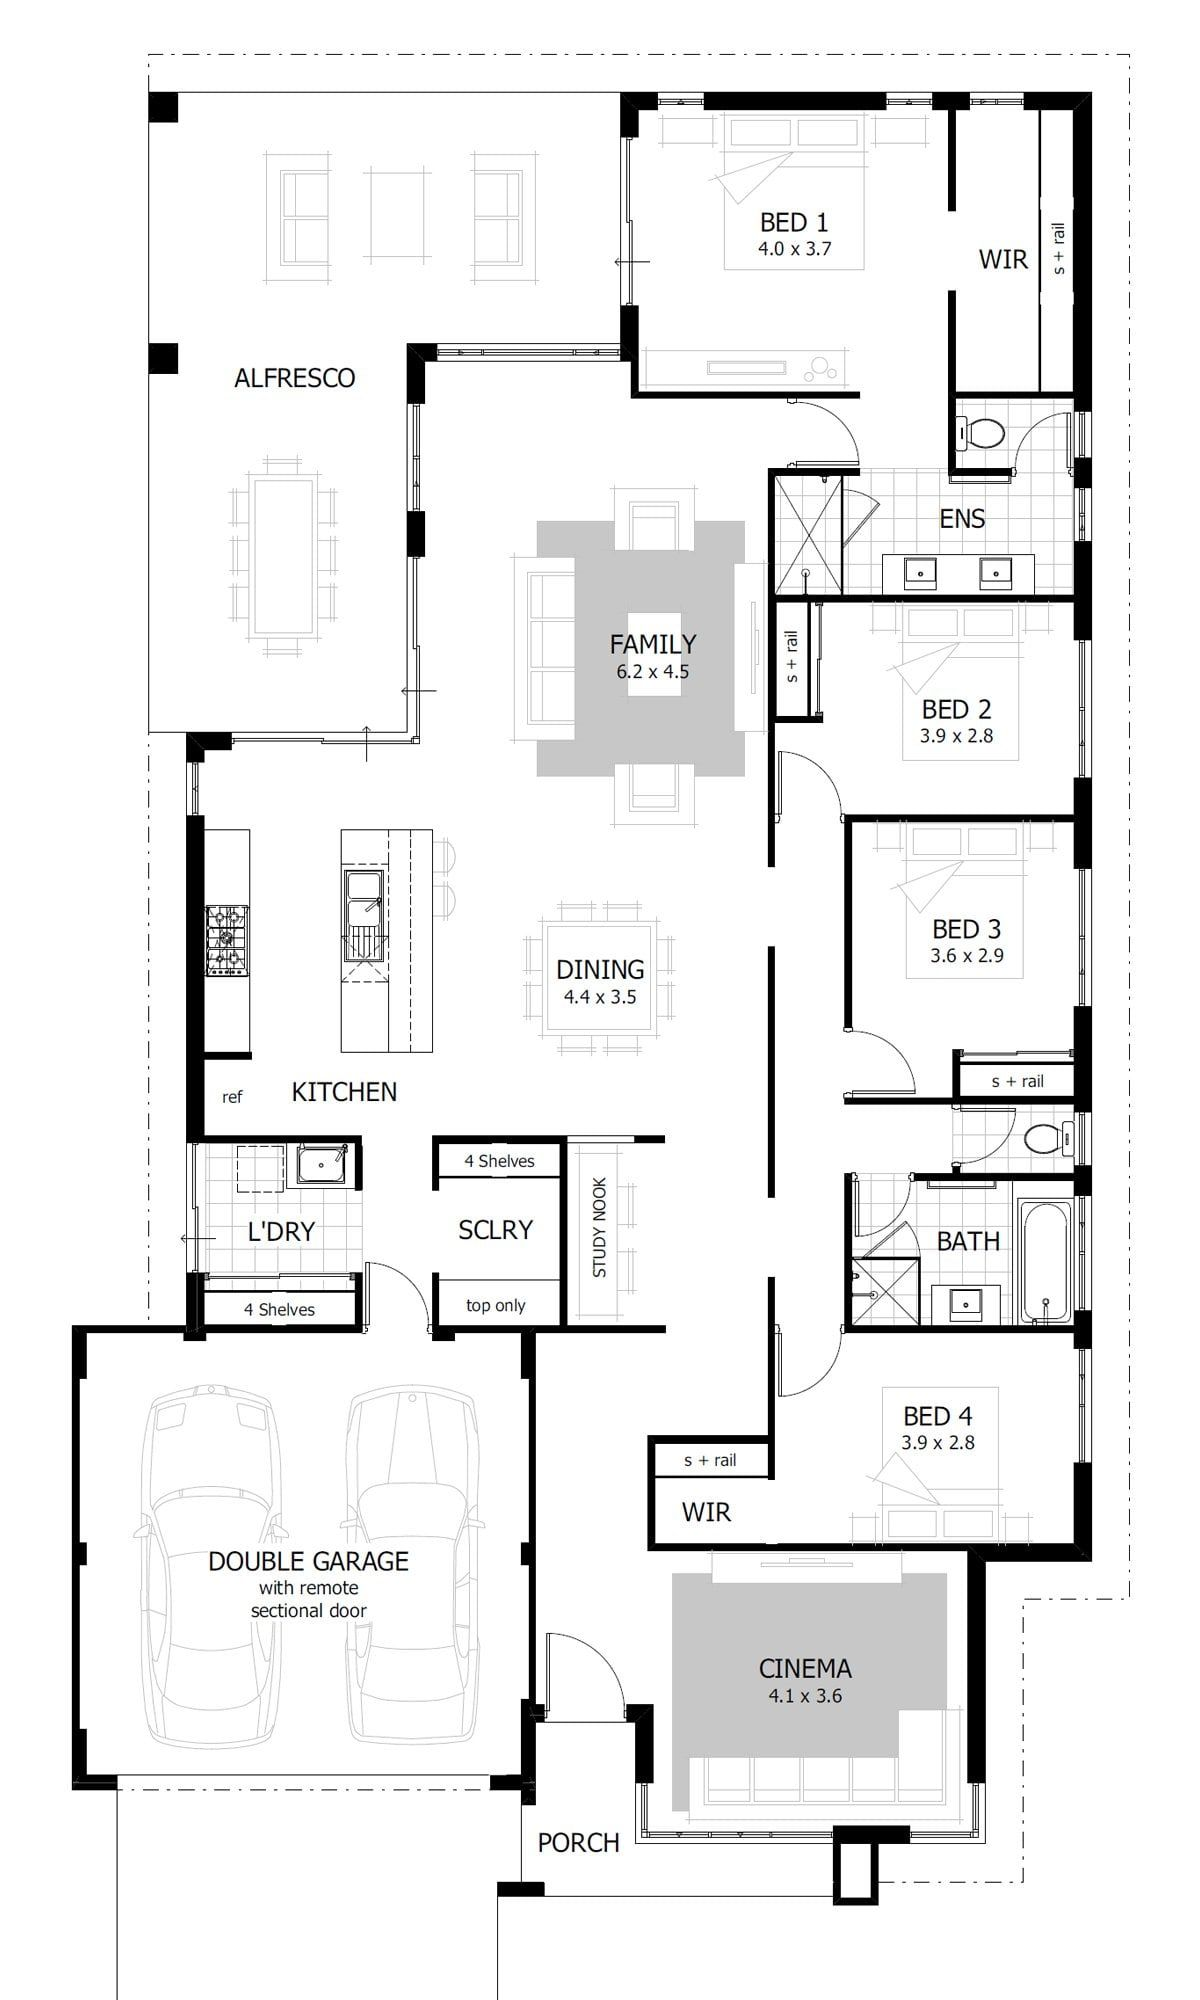 Home Design Plan 10x8m 3 Bedrooms With Interior Design Samphoas Plansearch Home Design Plan Home Design Plans Architecture House